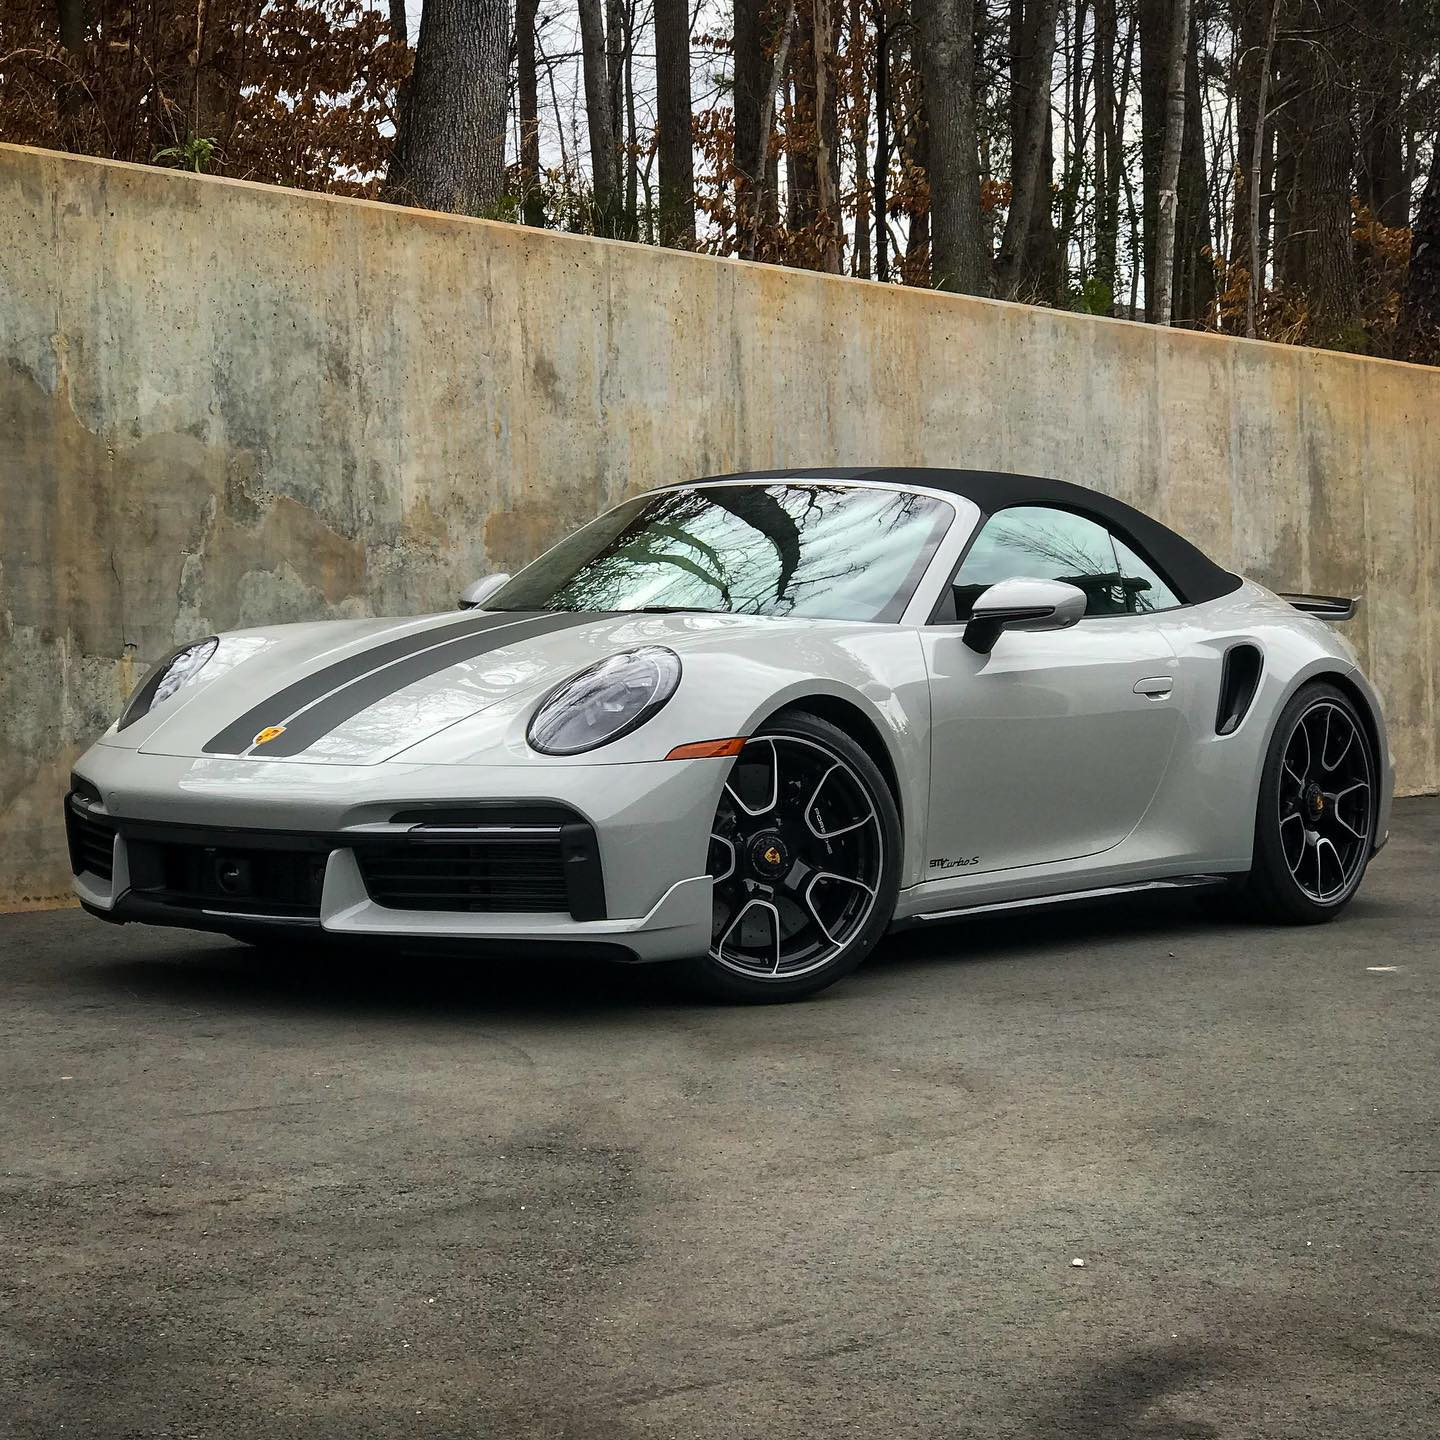 """Vickers recently shared photos of his new Porsche 992 Turbo S Cabriolet, shown here, on his social media. He called the car """"...a great way to improve your mood during chemotherapy!"""" Fair enough!"""